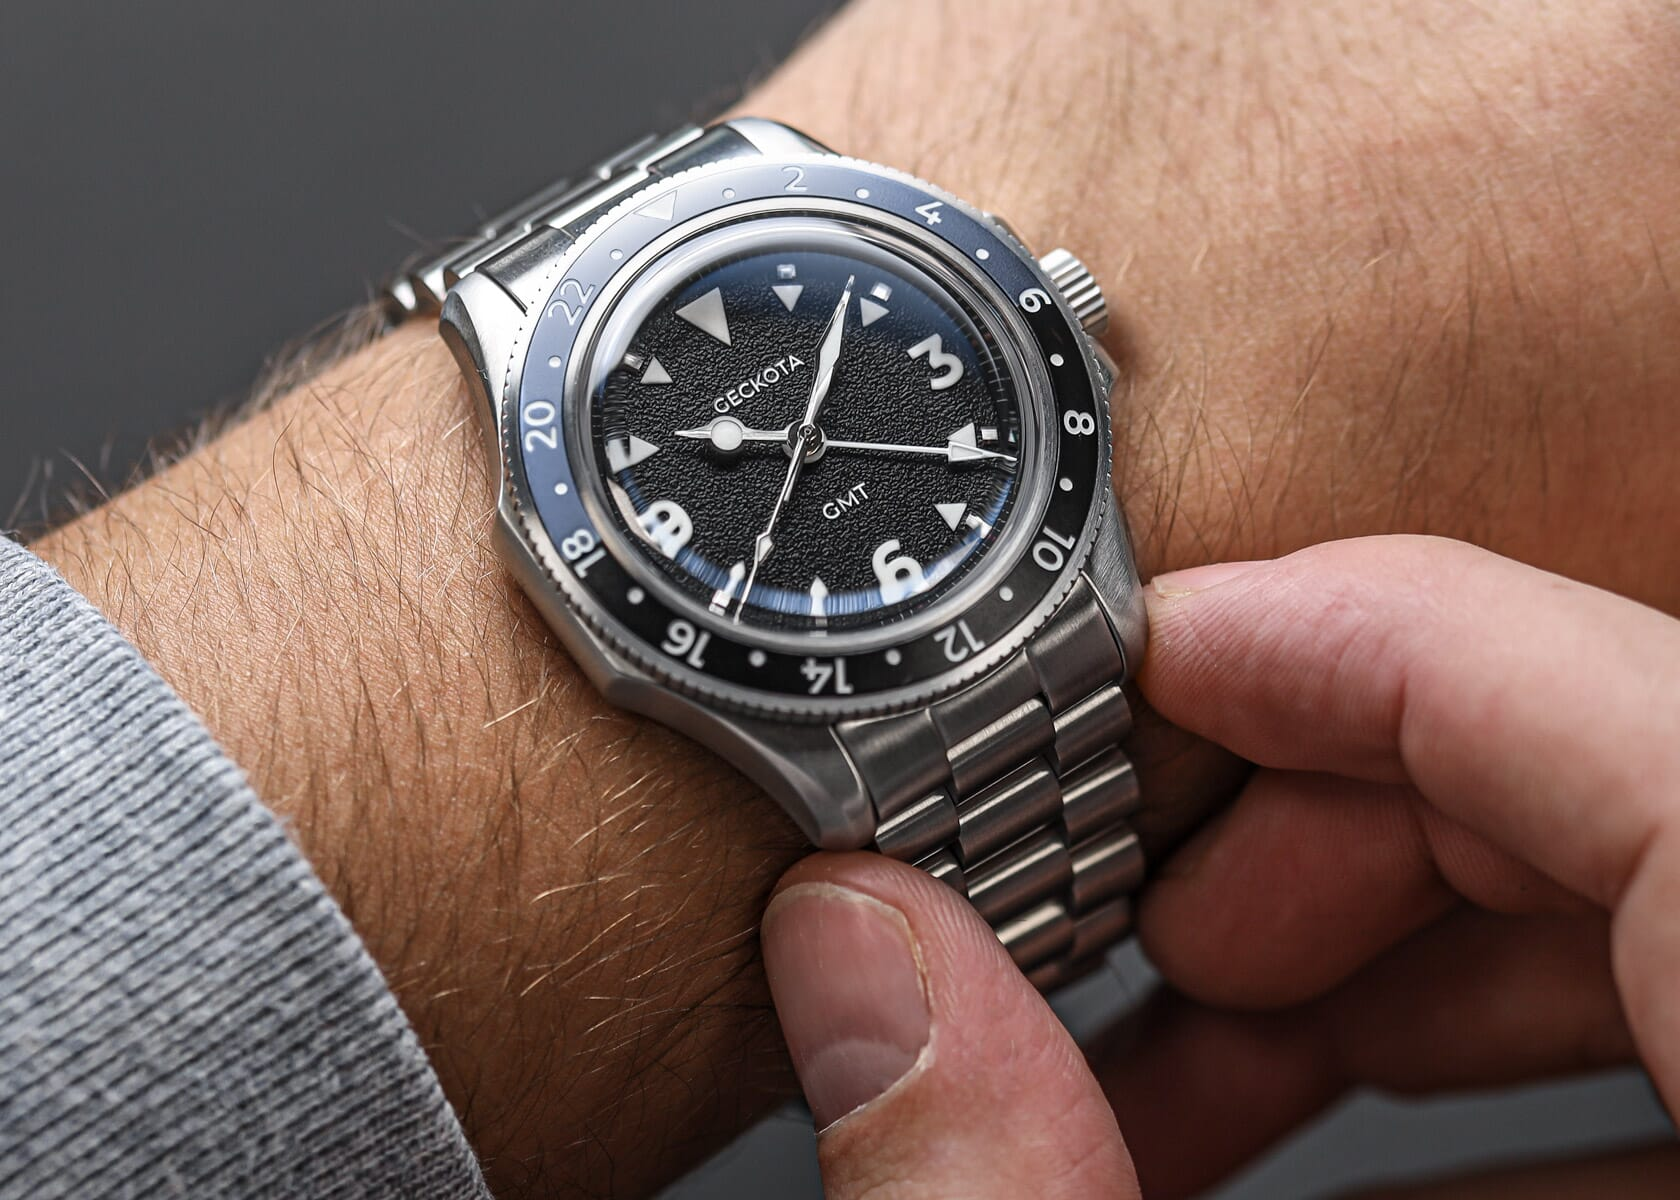 The Geckota GMT vs E-01 Gen 2 - Exploring the Exploration Watch Collections